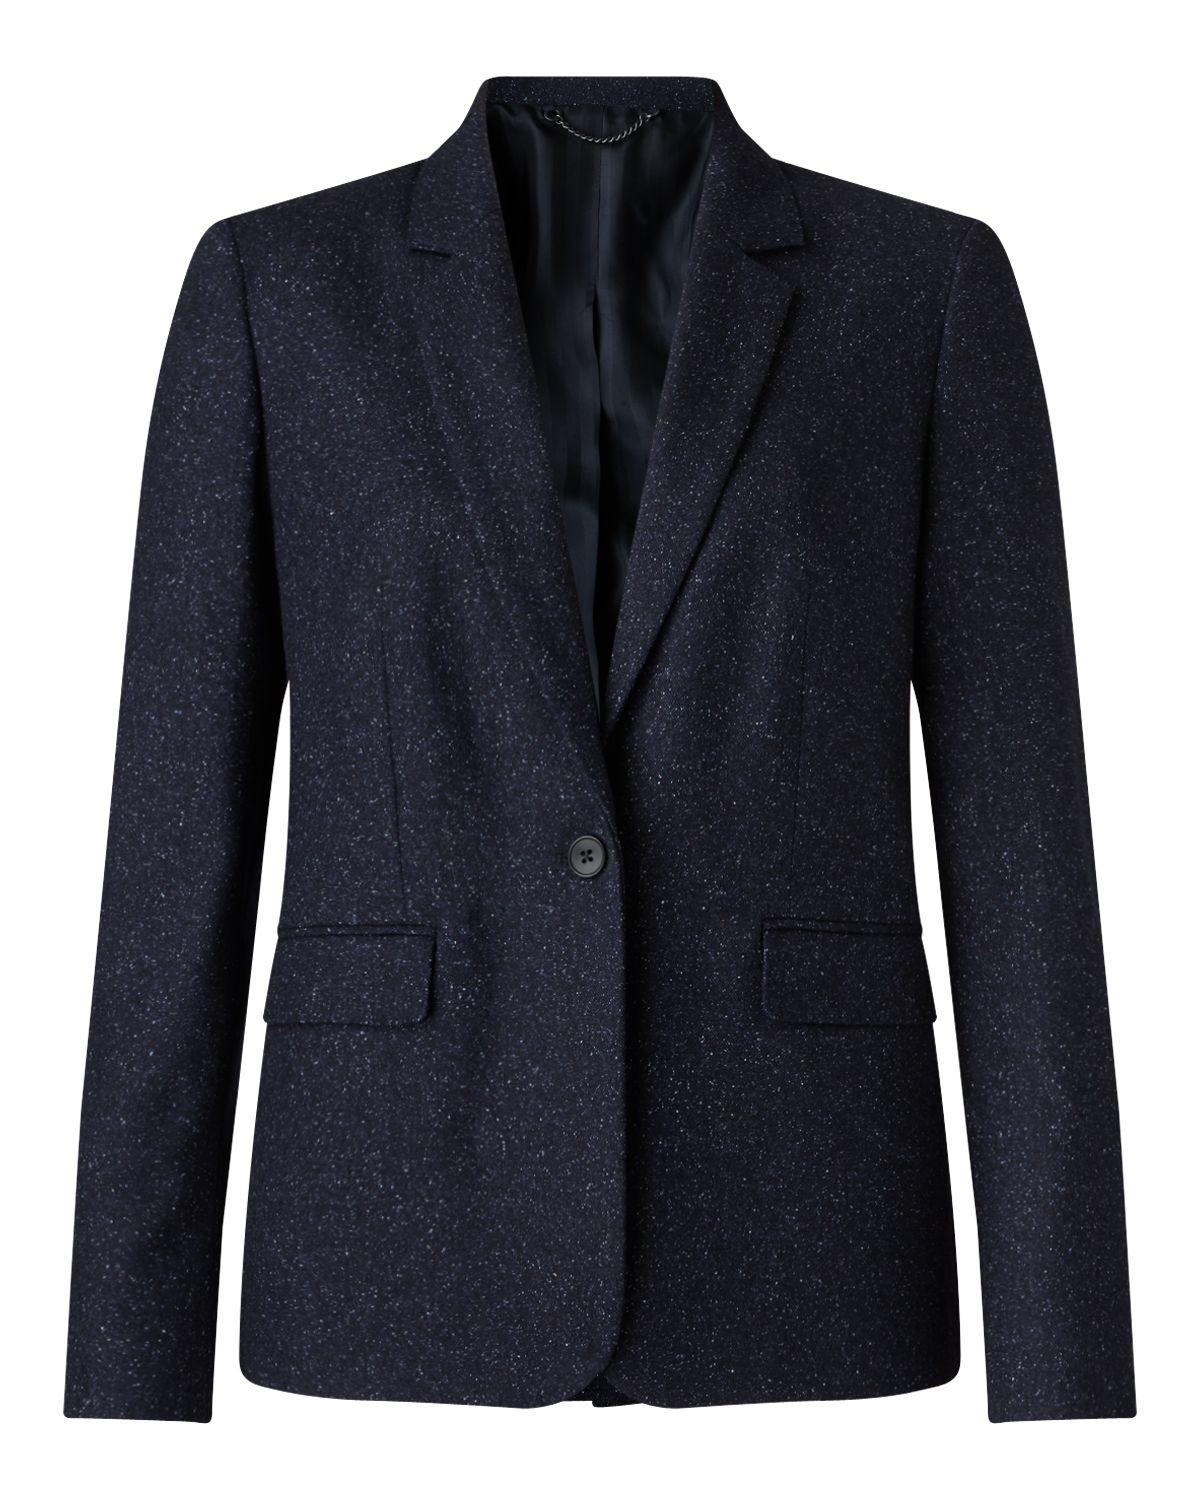 Jigsaw Flecked Tailoring London Jkt, Blue